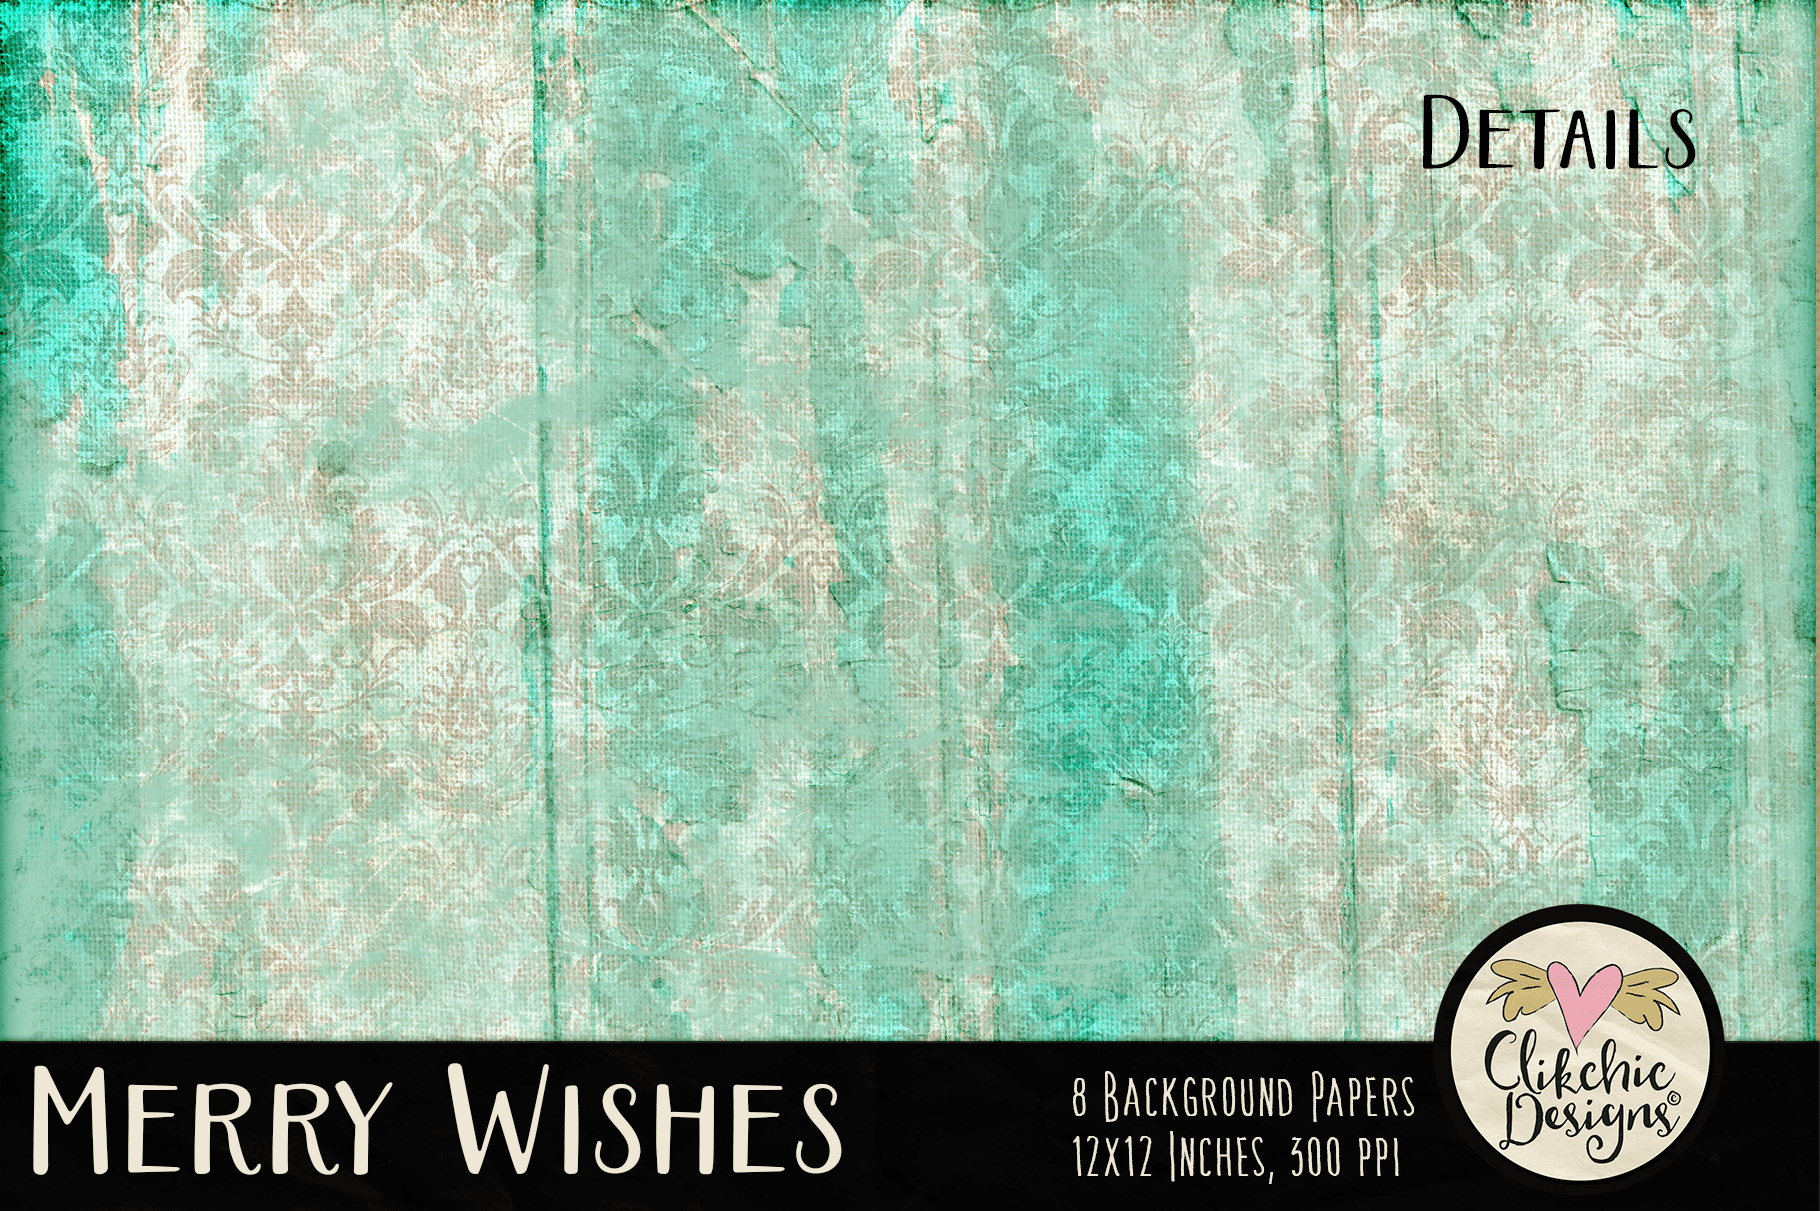 Christmas Backgrounds - Merry Wishes Digital Papers Textures example image 3